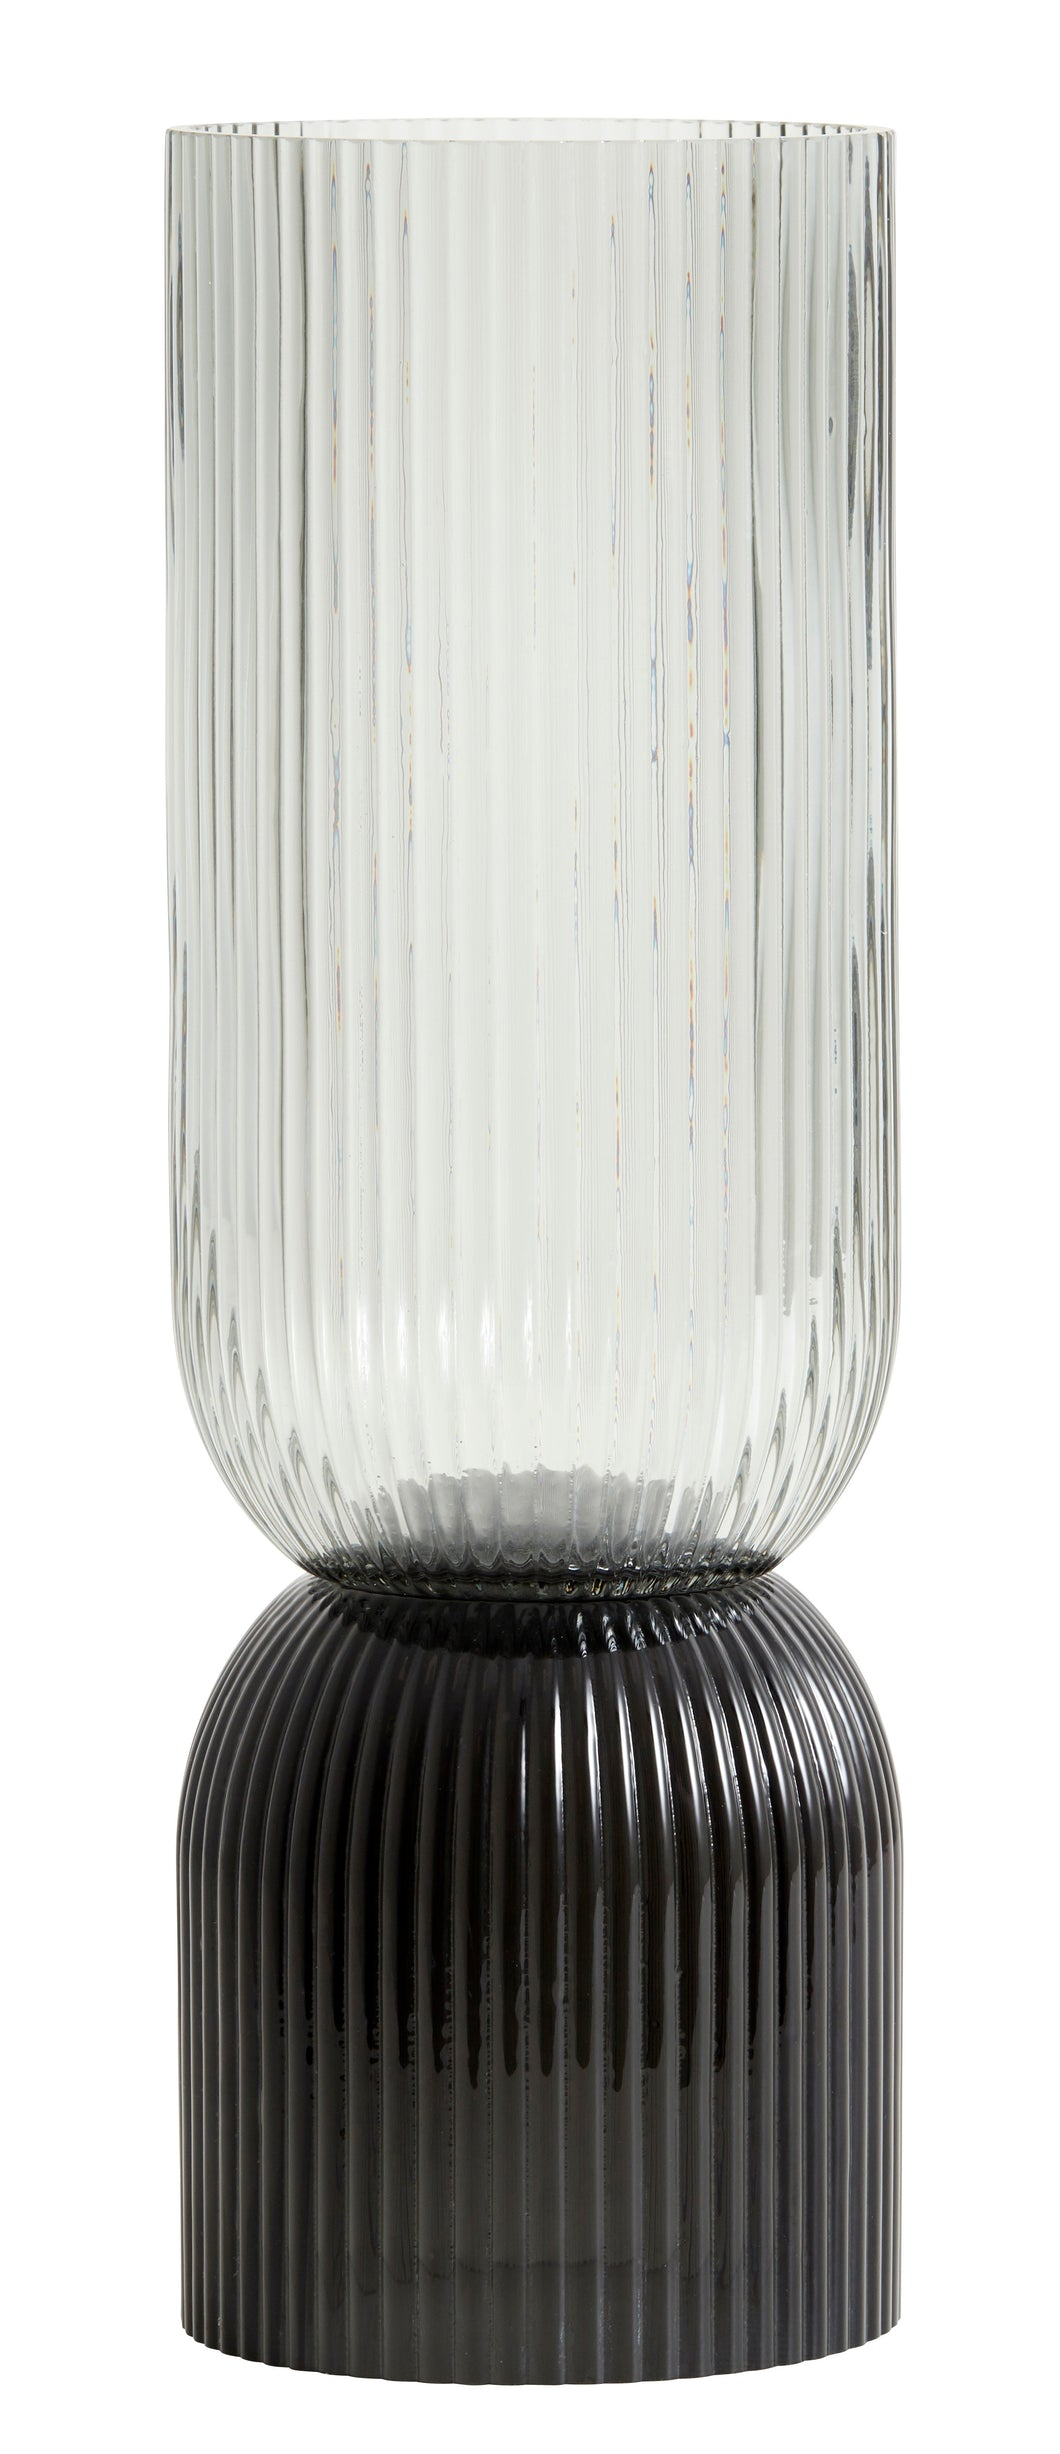 PRE ORDER - MID MAY DELIVERY Nordal Riva Black & Grey Glass Vase / Candleholder